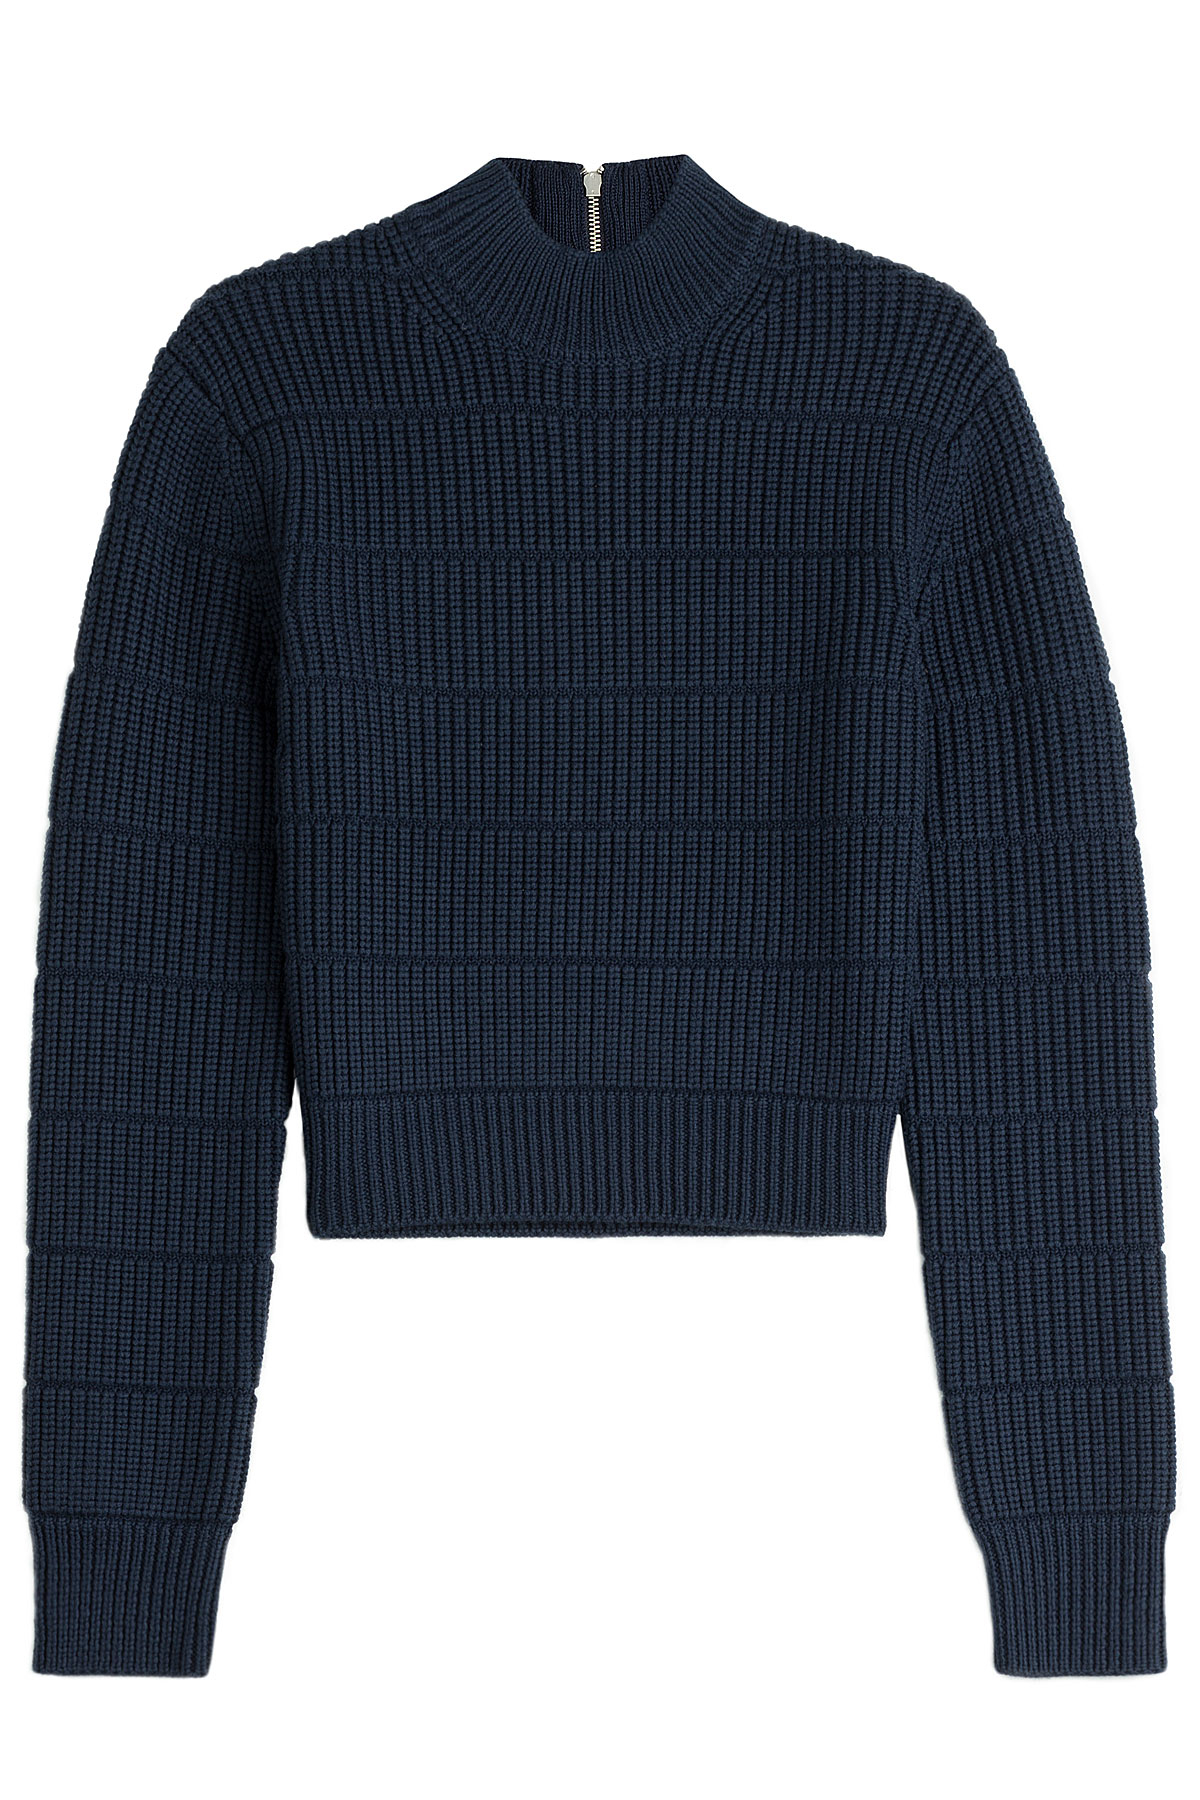 marc by marc jacobs merino wool pullover blue in blue lyst